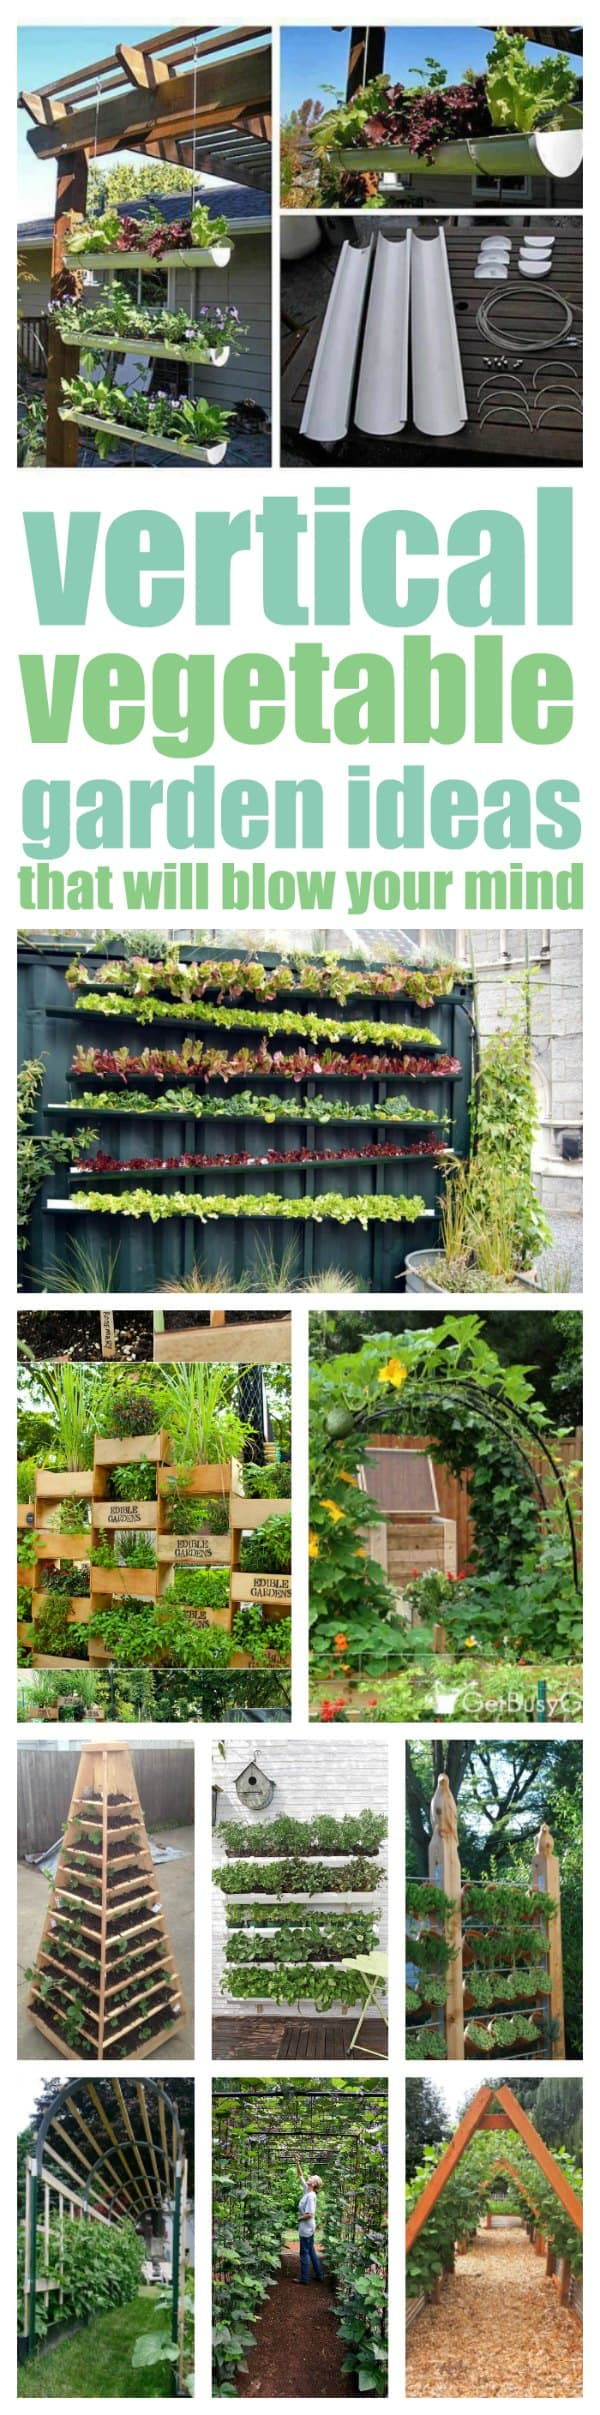 vertical vegetable garden ideas that will solve your garden space problems - Garden Ideas Vegetable